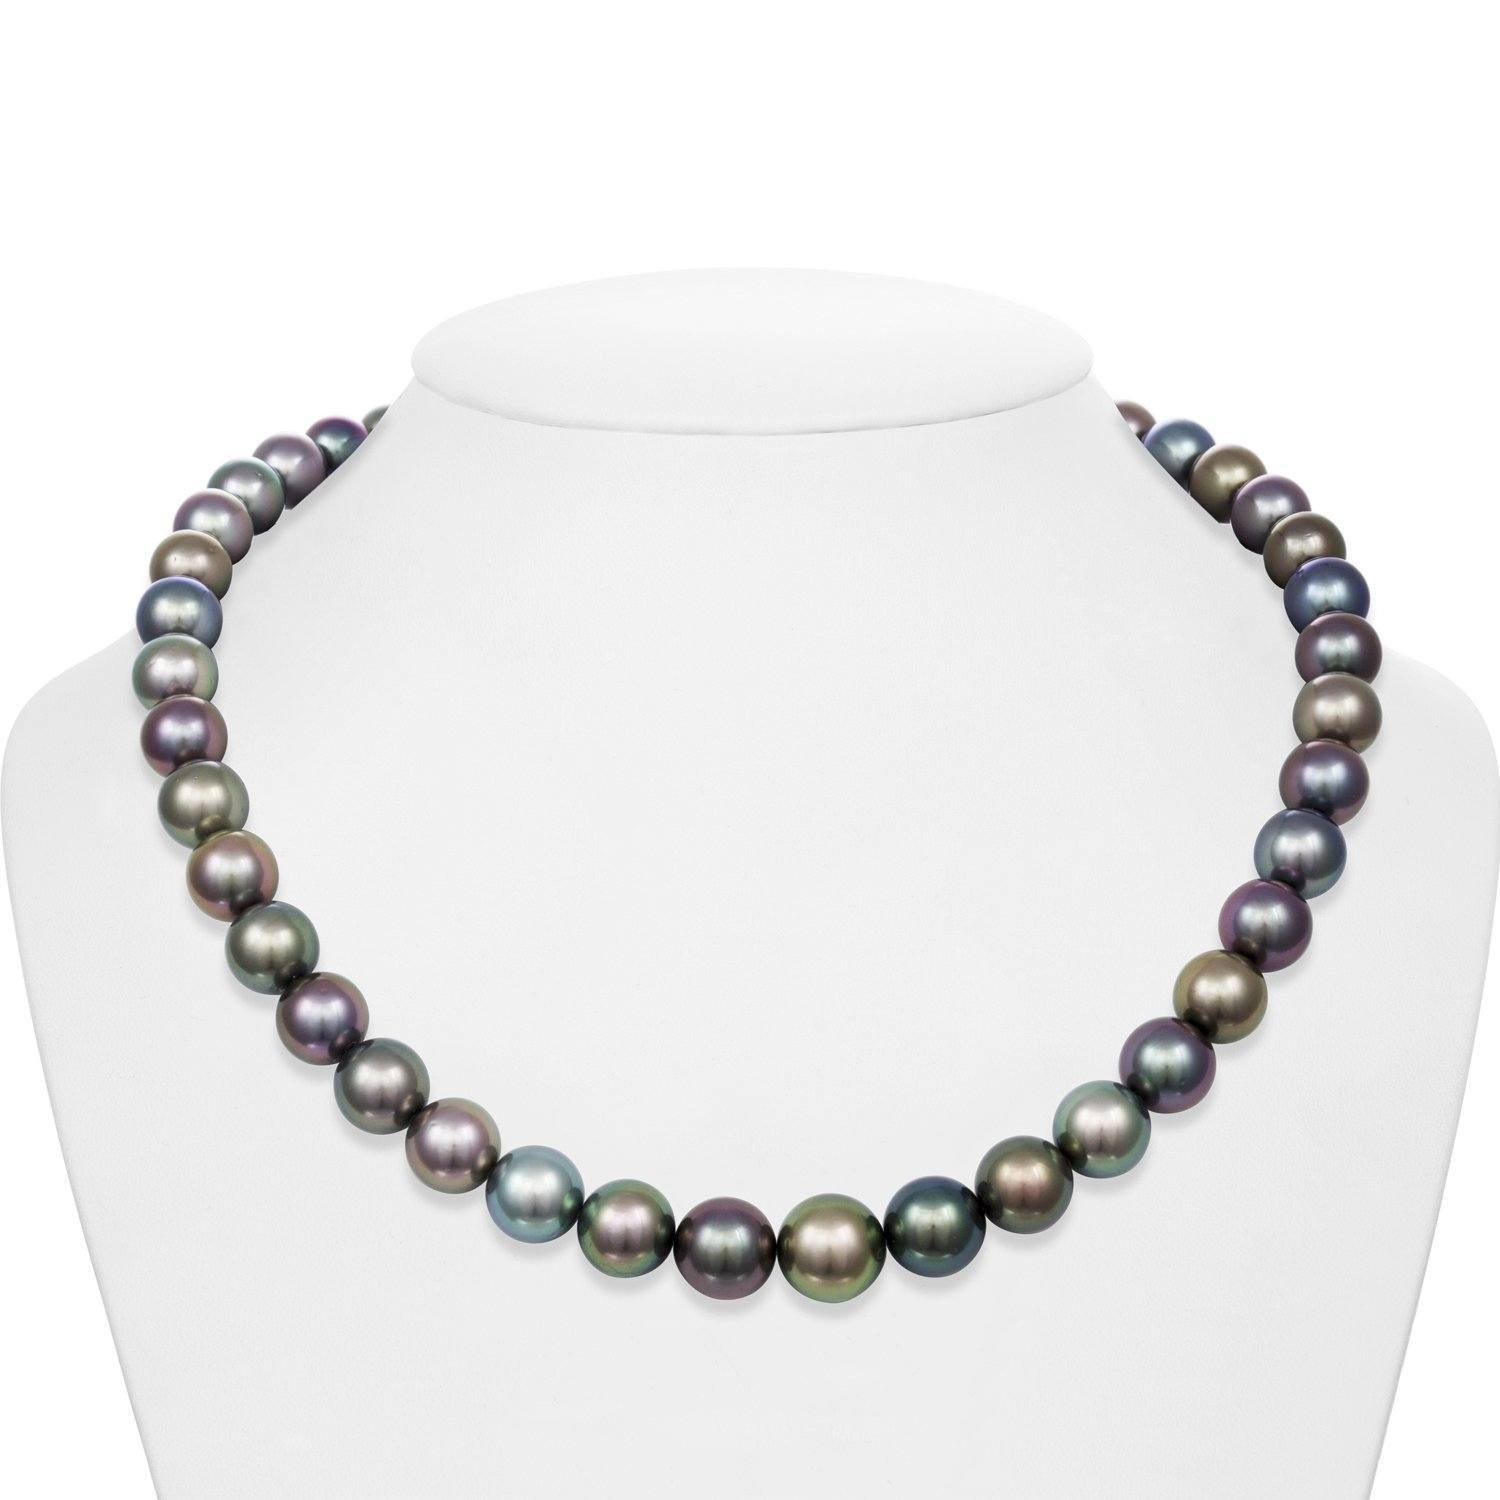 9.0-11.7 mm AA+/AAA Tahitian Round Pearl Necklace